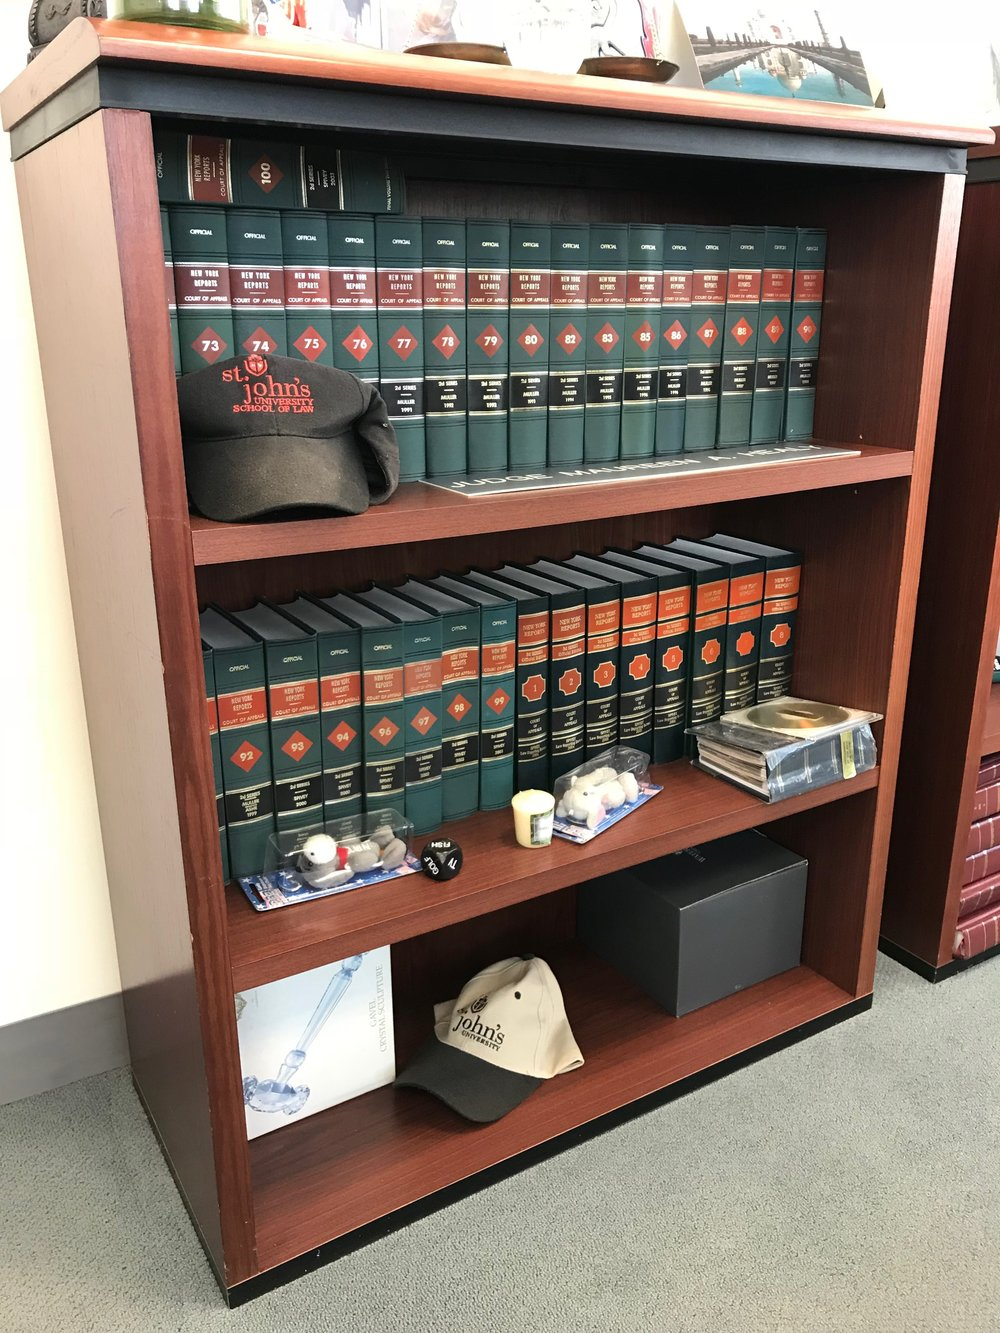 St. John's caps sit on the shelf among Healy's legal tomes. //  Eagle  photo by David Brand